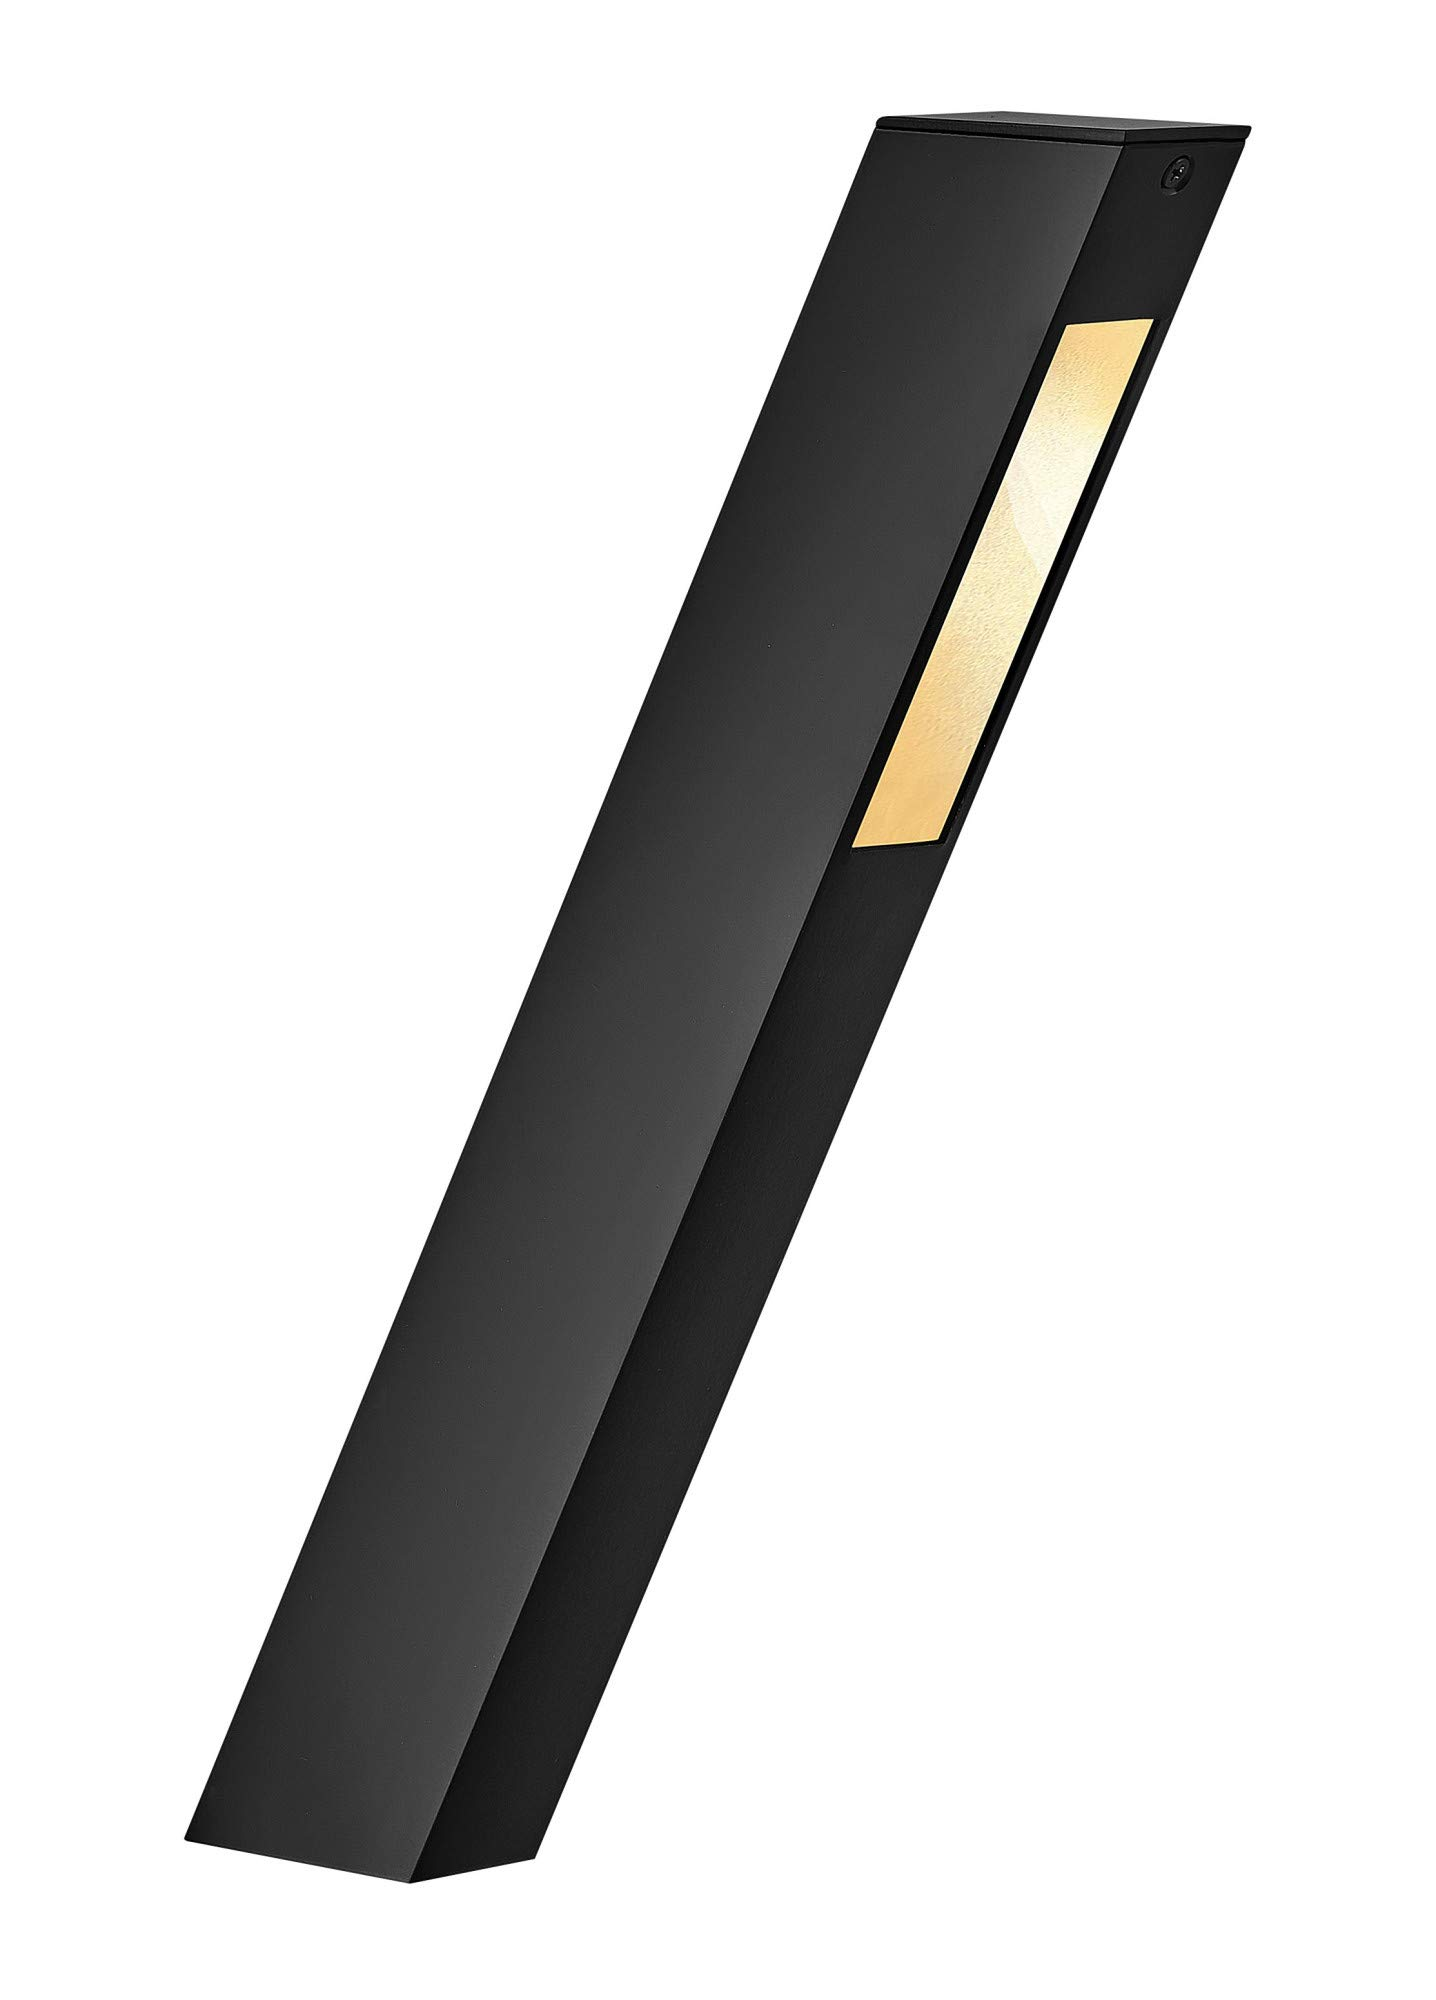 Hinkley Lighting 1548SK-LED 12v 5.7VA 3.8w 15'' Tall LED Path Light from The Piza Collection